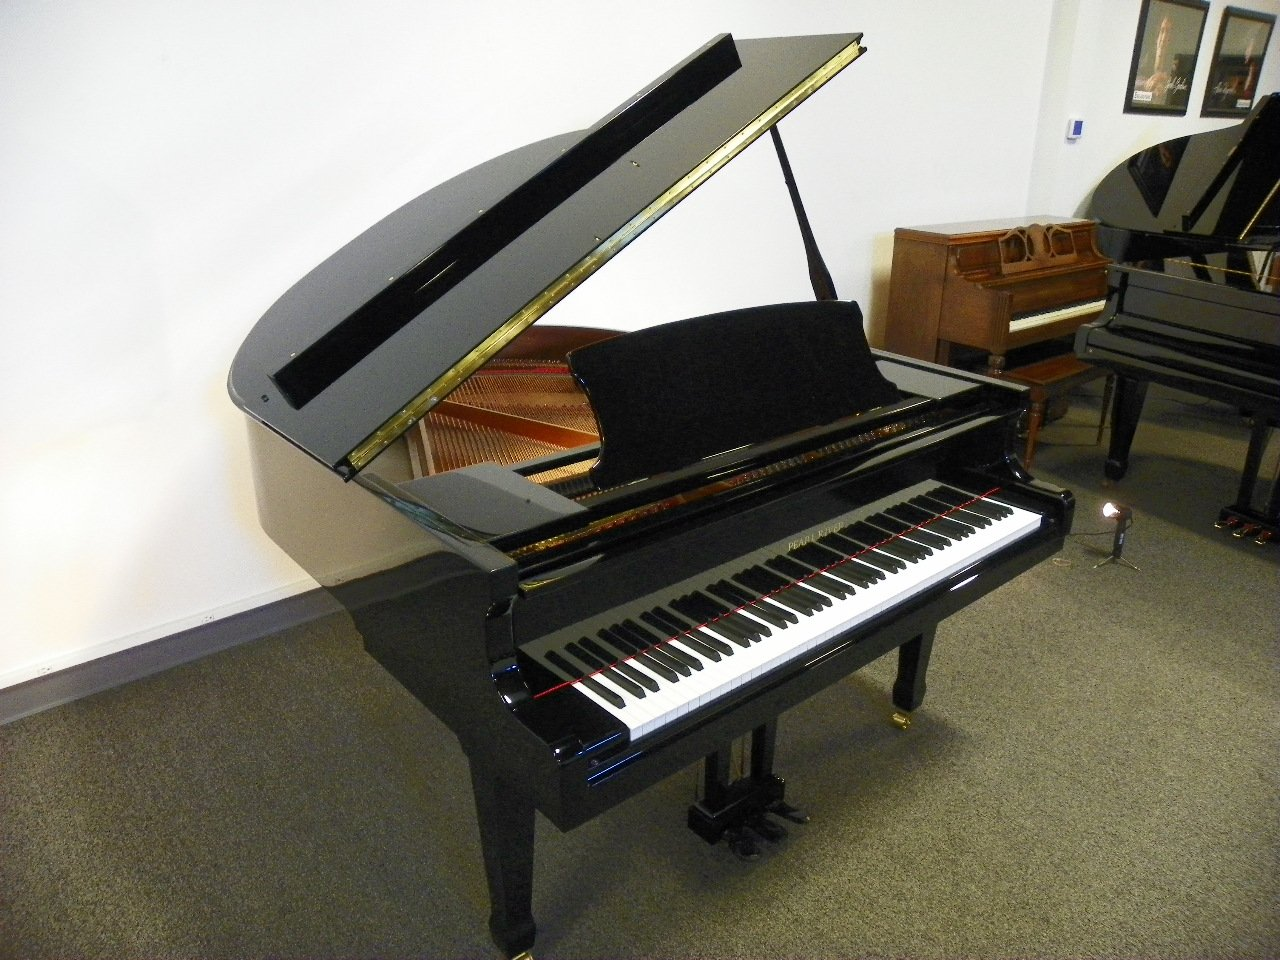 pearl river piano Pearl river pianos from az piano combine the latest technology with classic design and quality construction to produce the best piano value in the world.